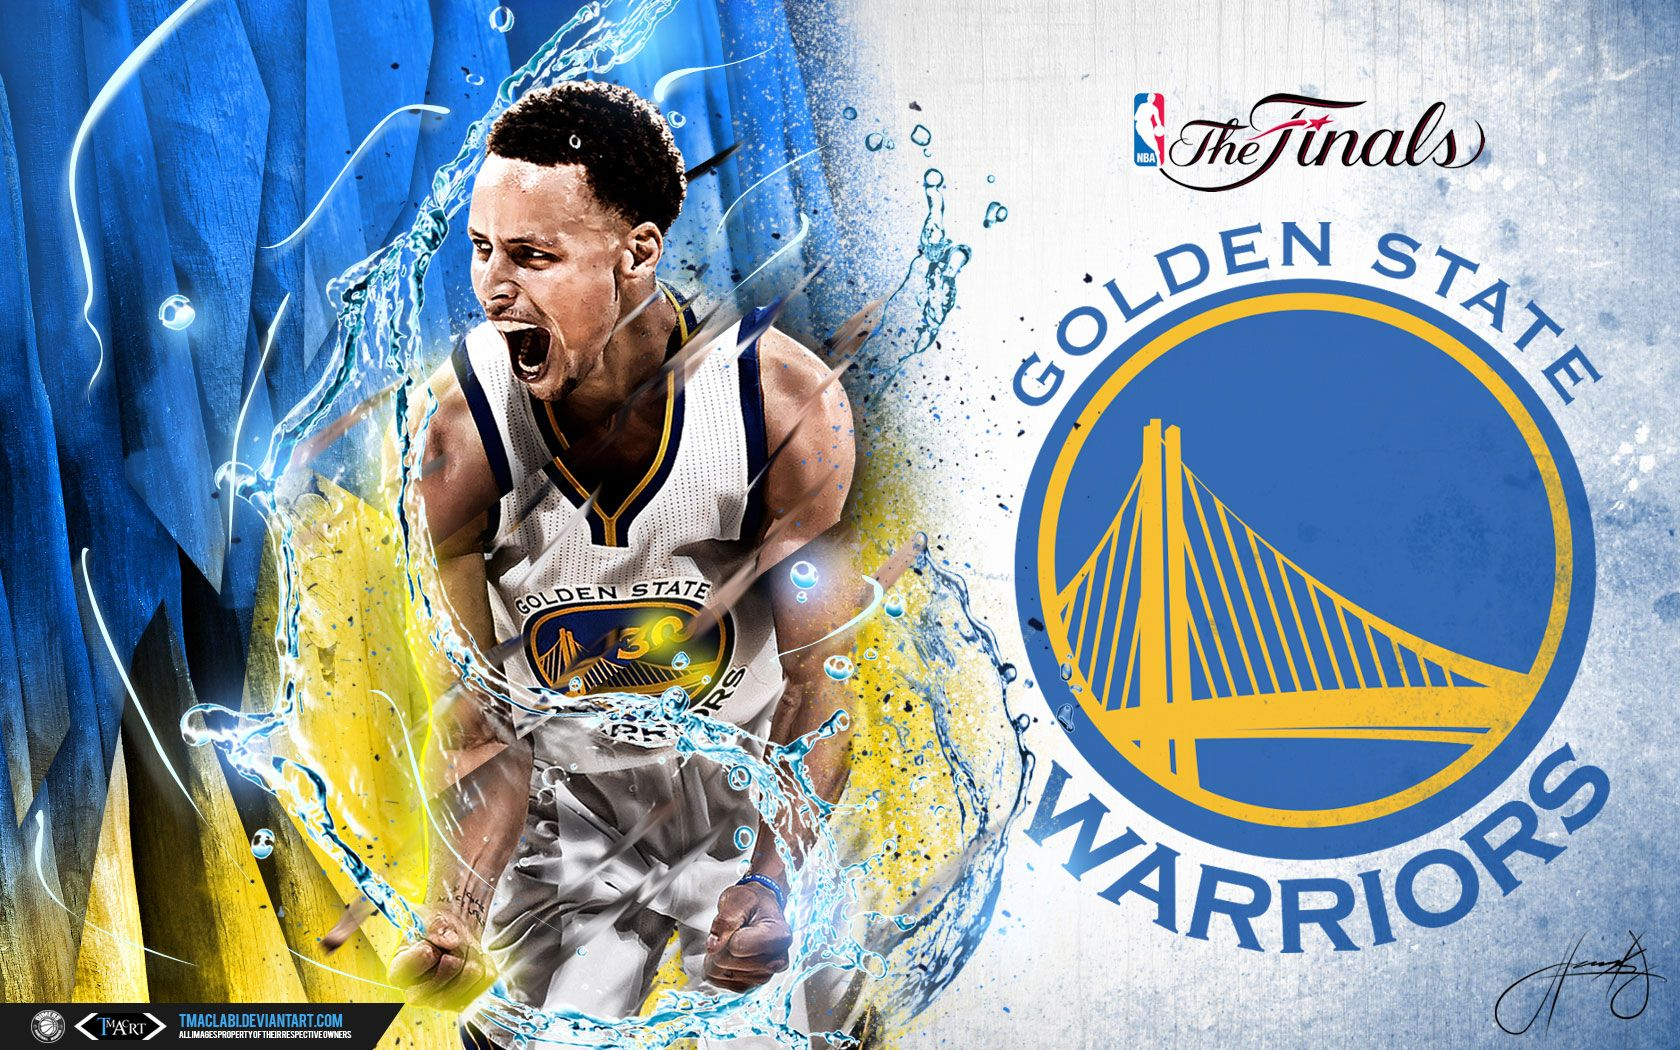 IPhone 6 Stephen curry Wallpapers HD, Desktop Backgrounds